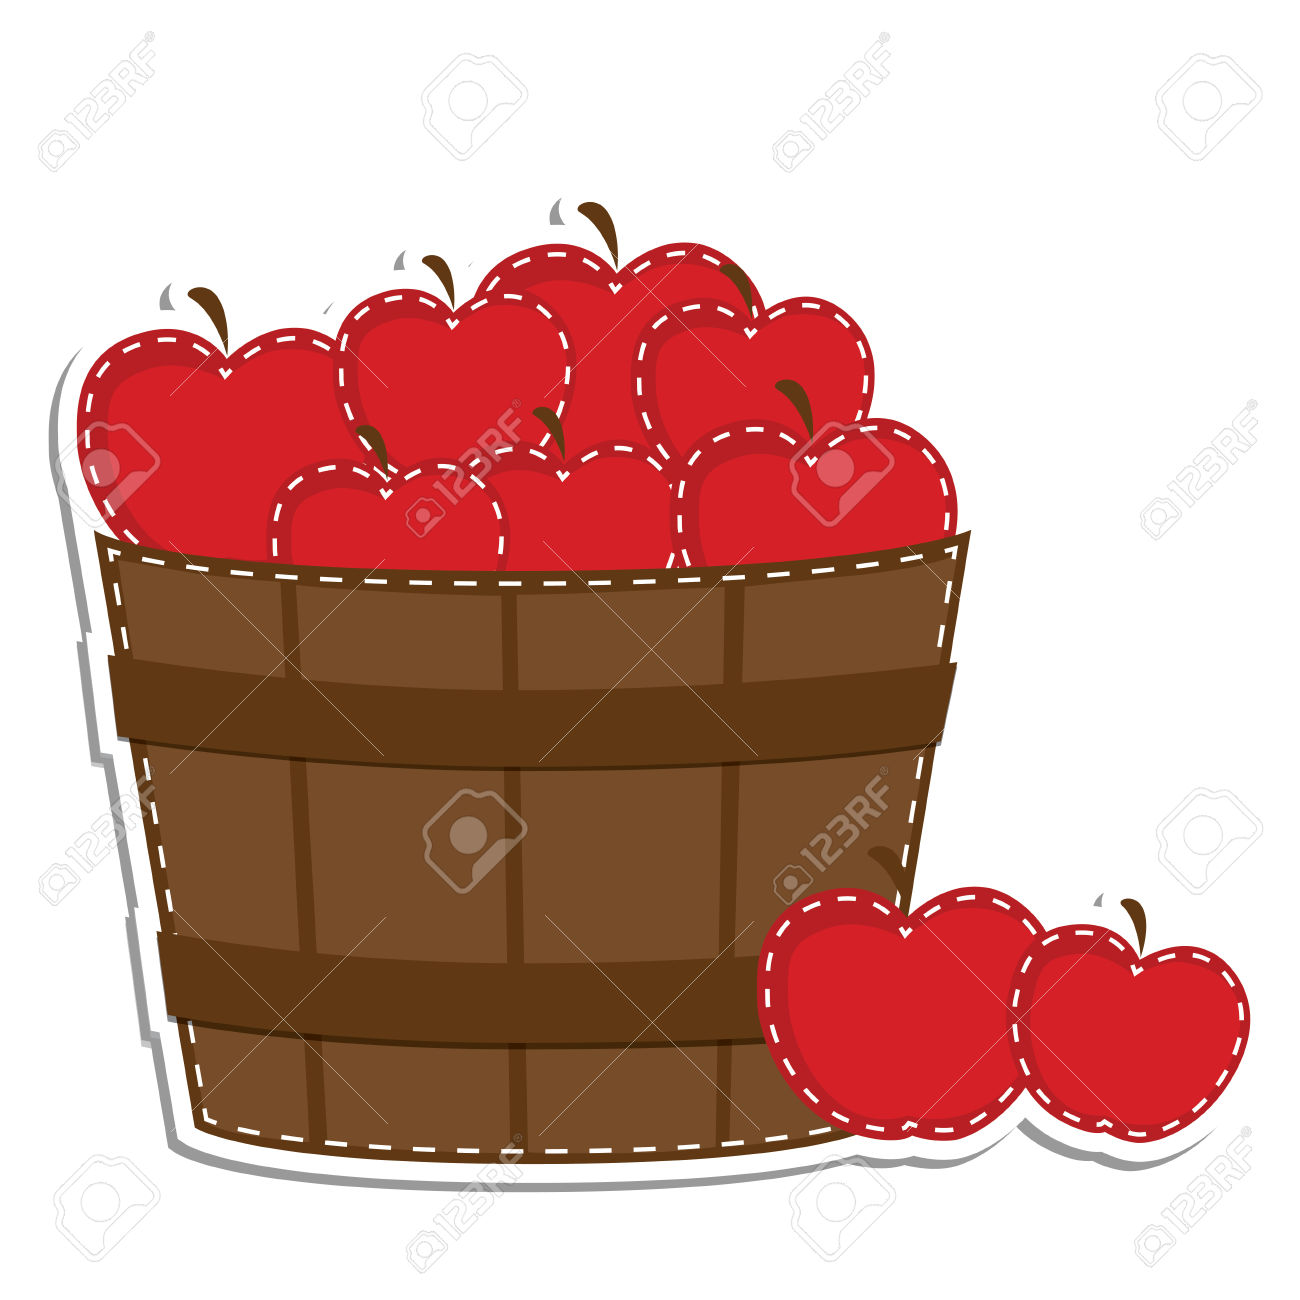 Apple basket clipart no background.